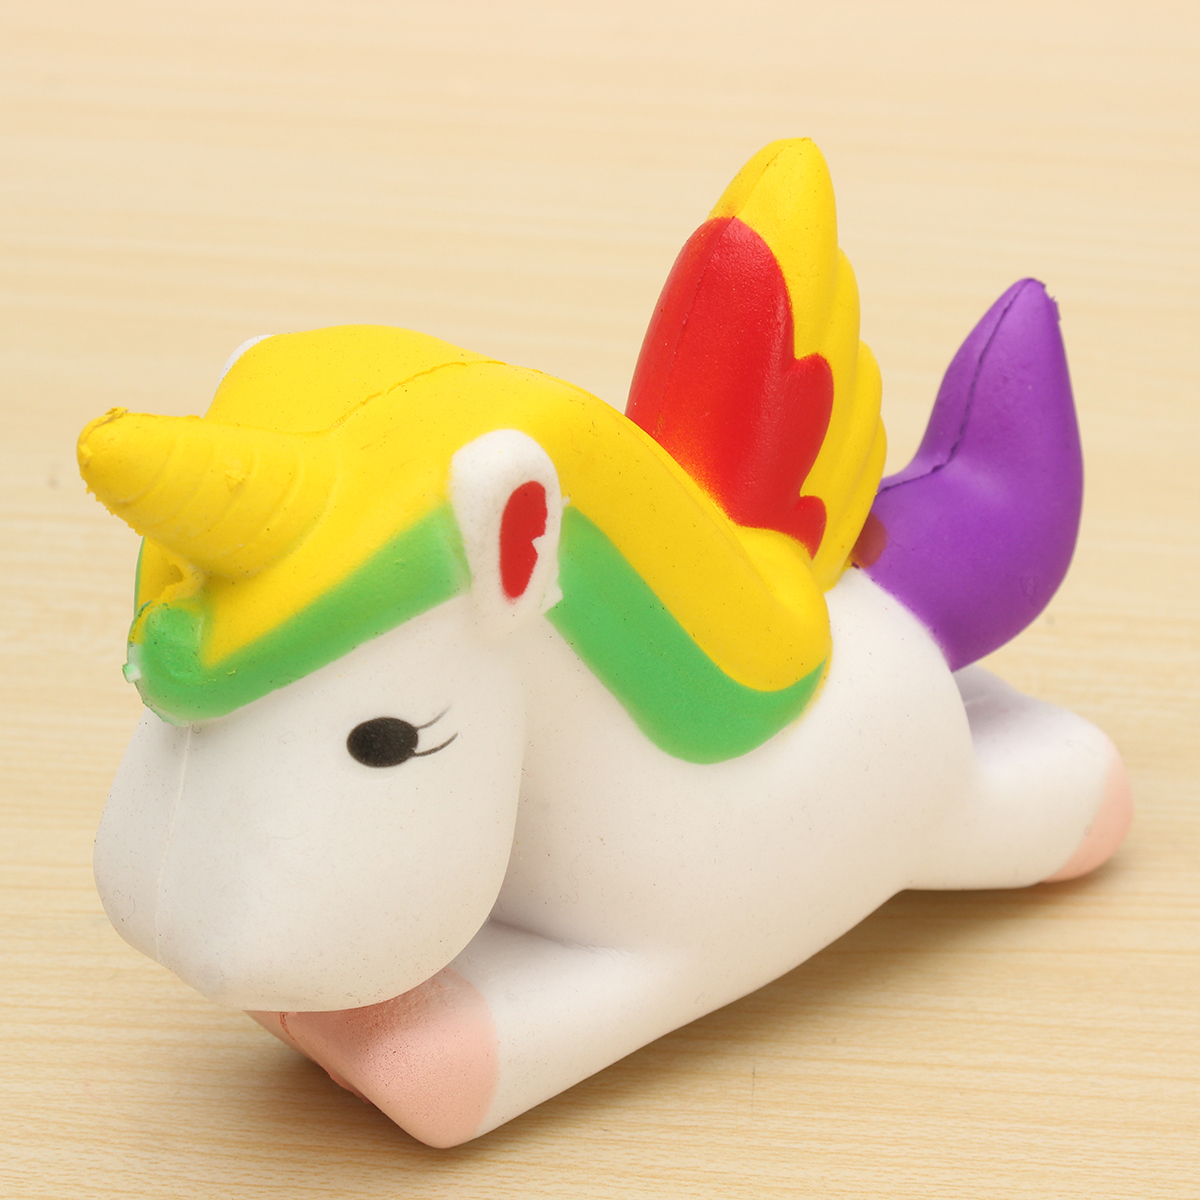 Old Squishy Toys : 12CM Unicorn Squishy Slow Rising Cartoon Doll Squeeze Toy Collectibles for Cellphone Alex NLD